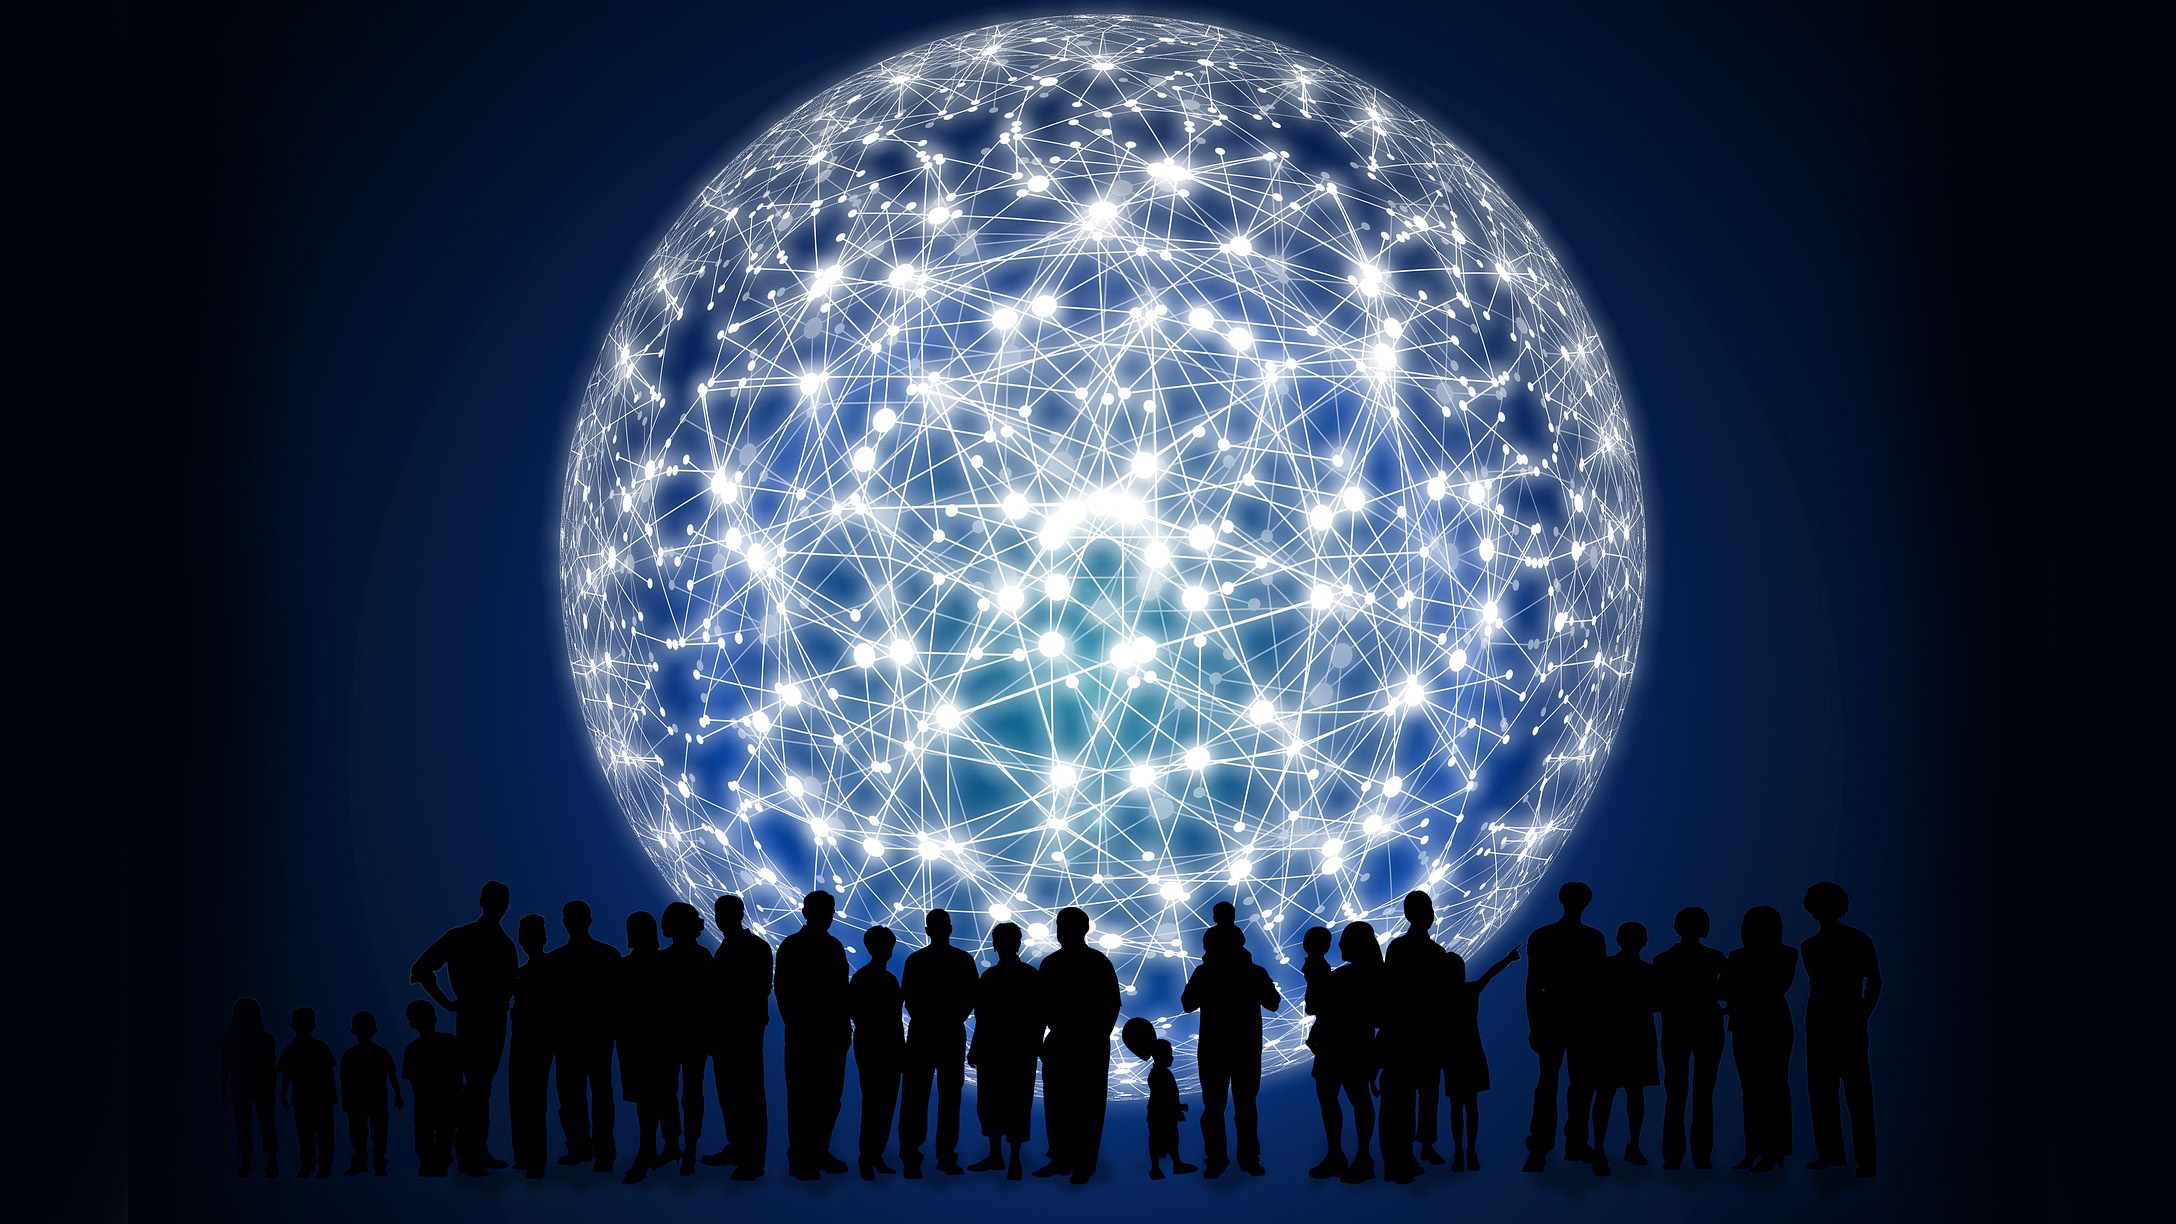 A row of human figures in front of a giant sphere representing networks of connections.